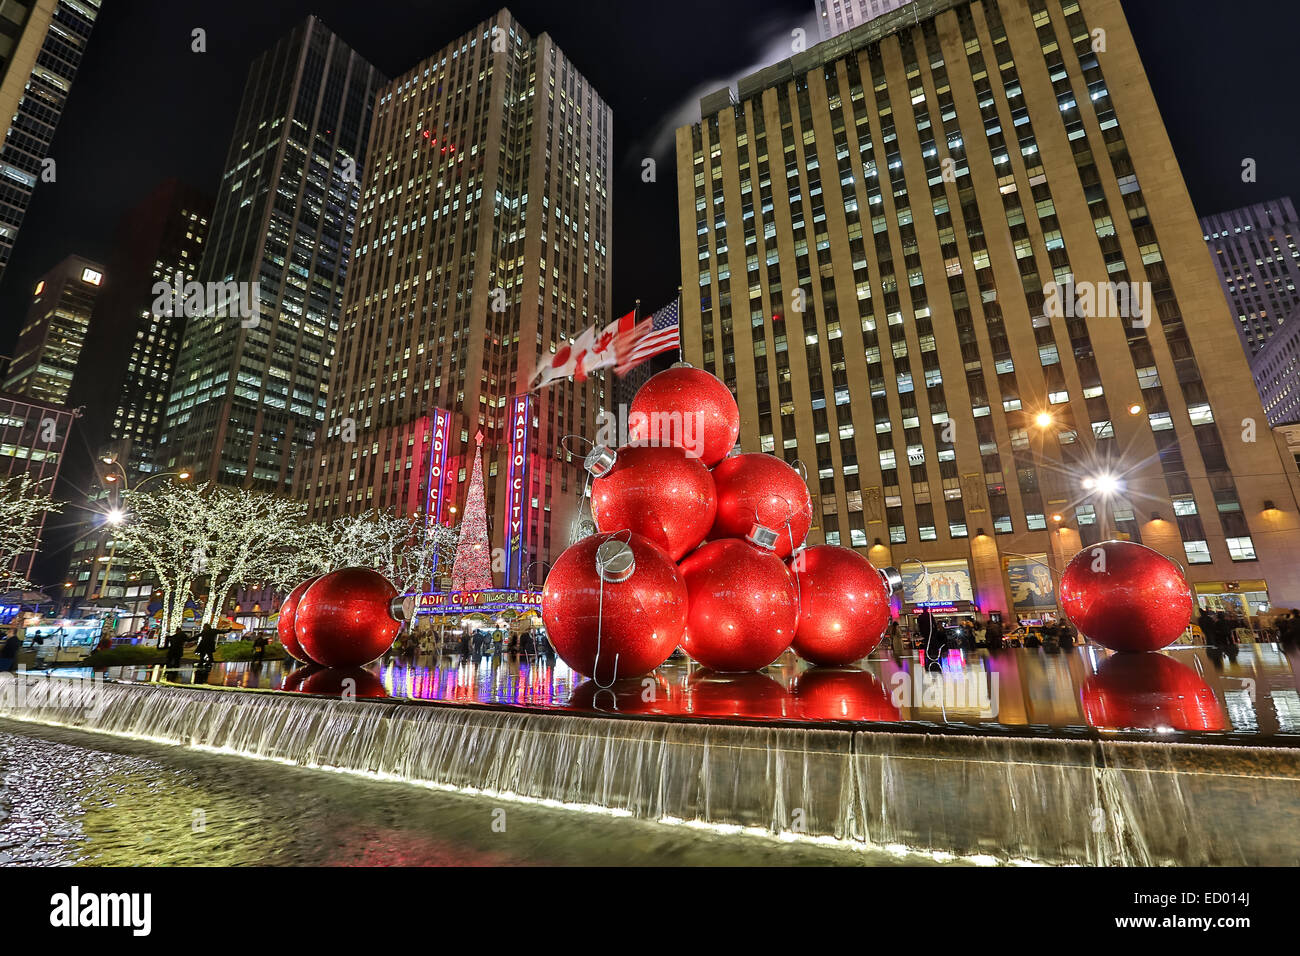 christmas decorations in front of the exxon building across from radio city music hall december 15